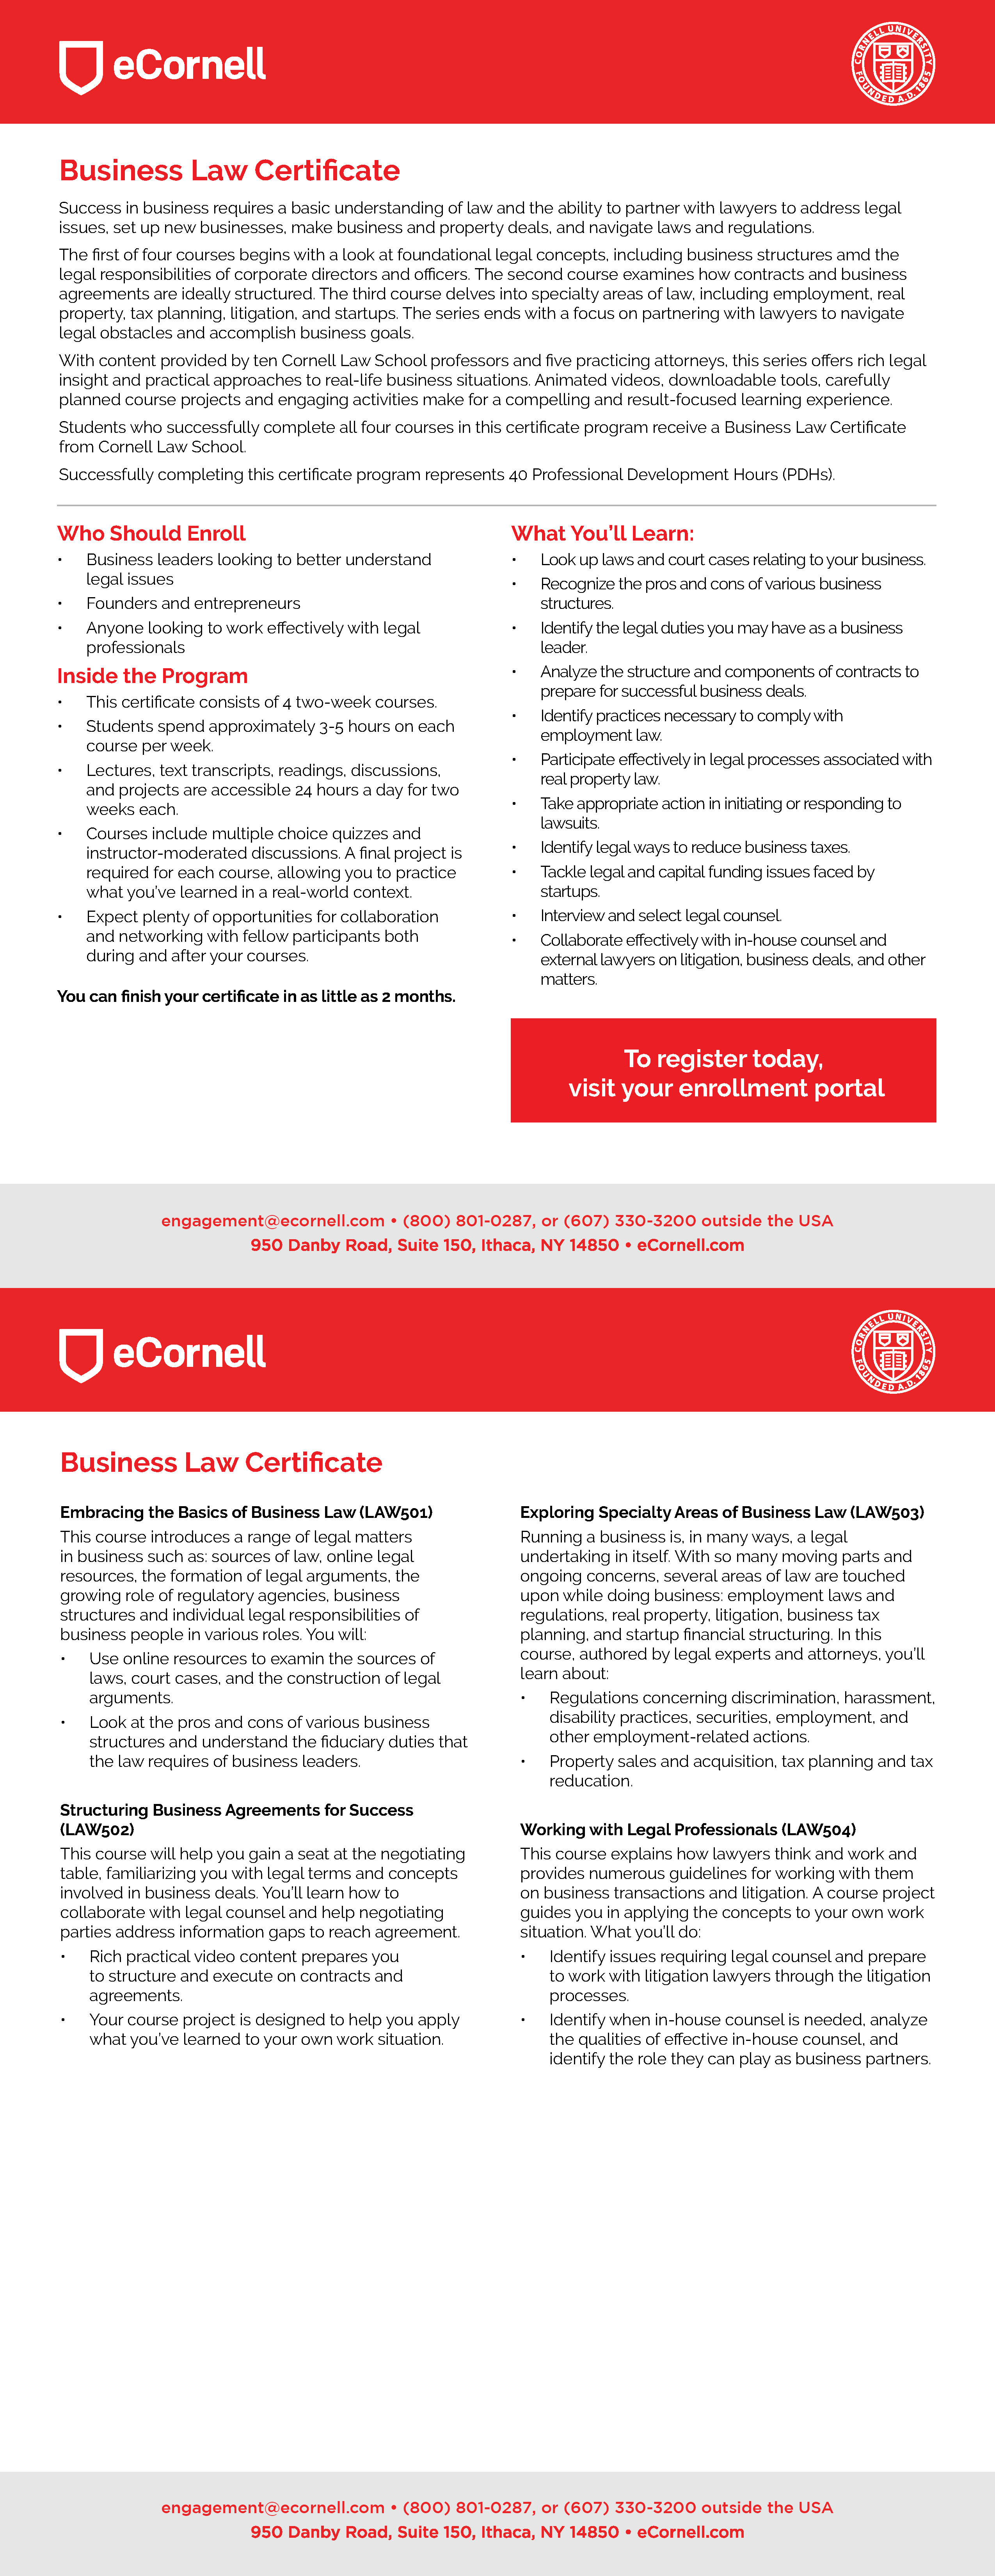 Essential Legal Concepts for Business Leaders Flyer for Corporations